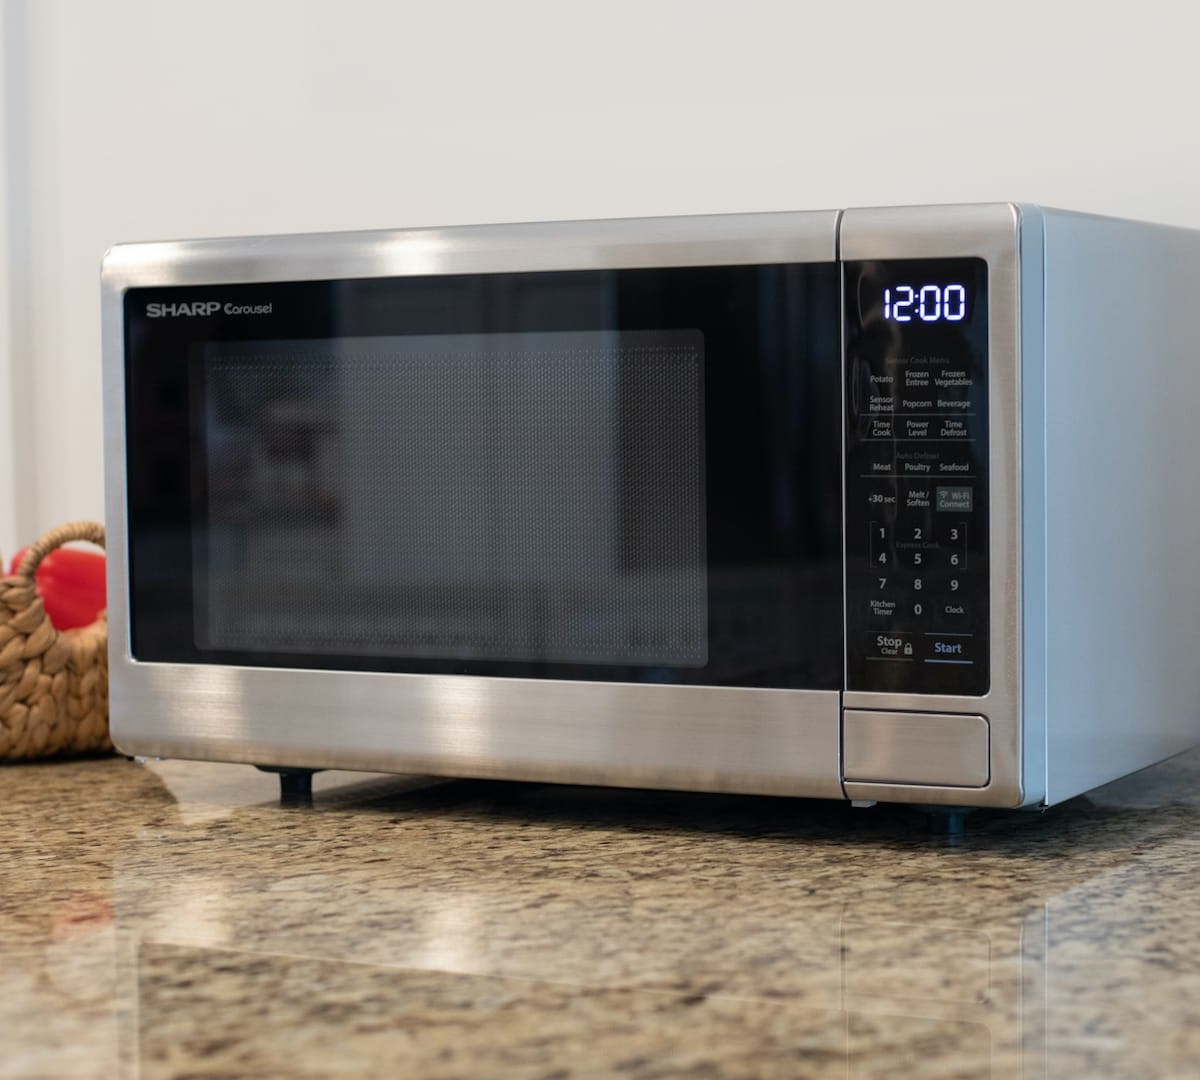 Sharp Smart Countertop Microwave Ovens offer Wi-Fi & Alexa connectivity